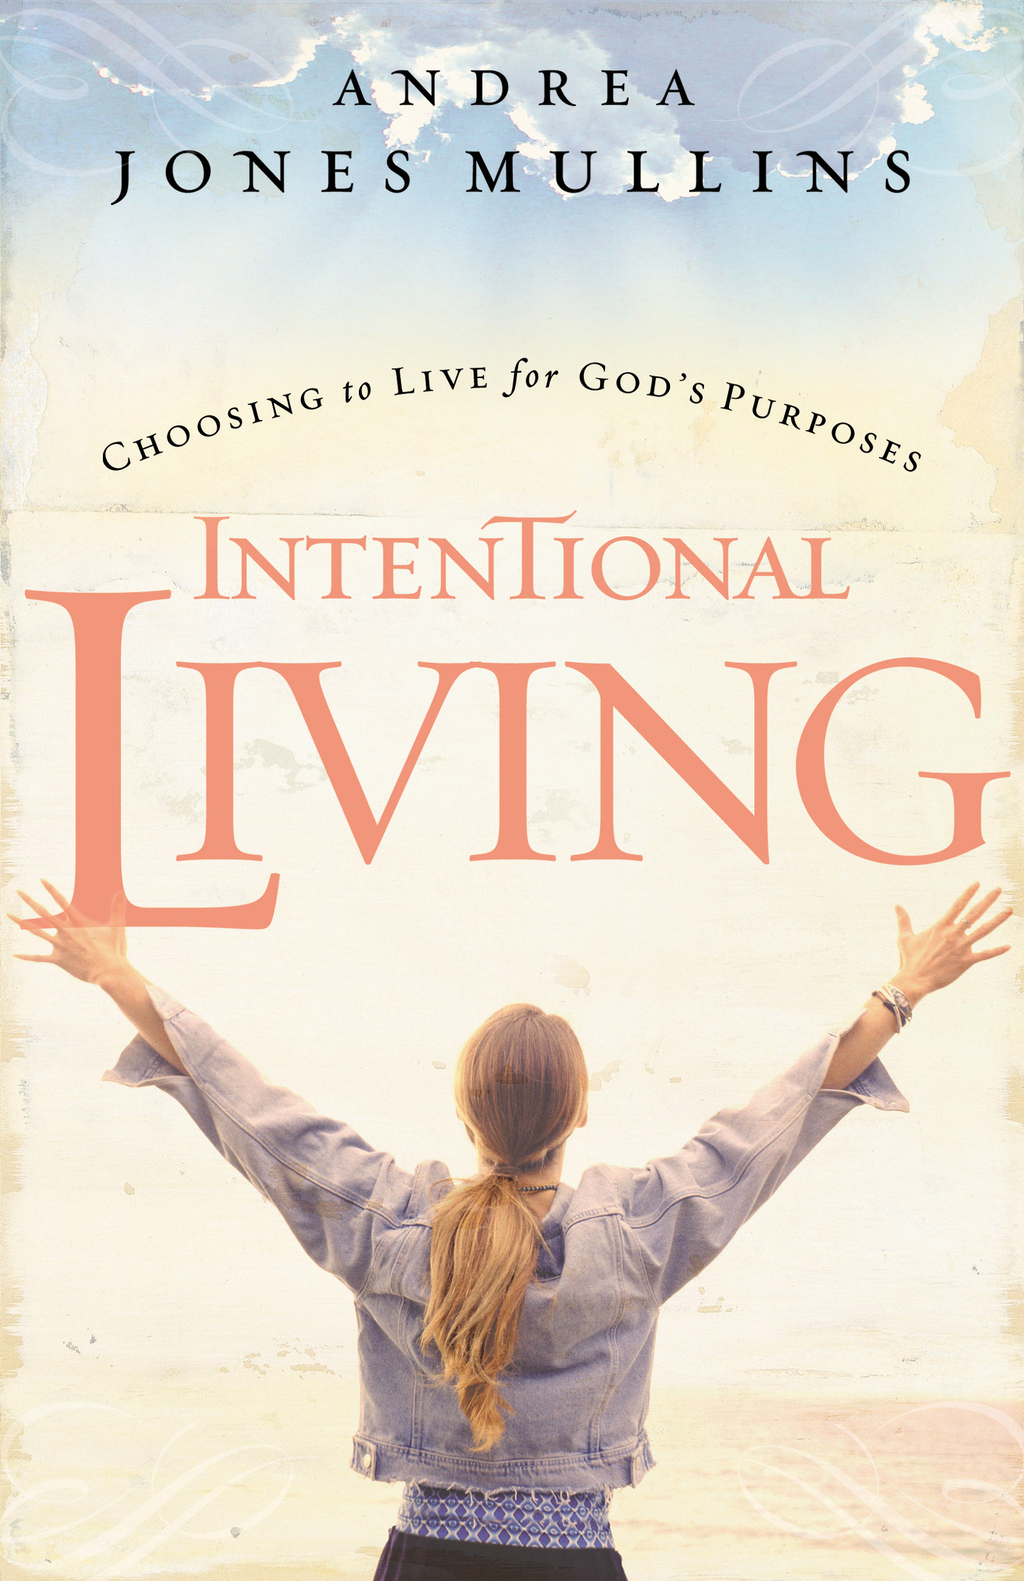 Intentional Living: Choosing to Live for God's Purposes By: Andrea Jones Mullins